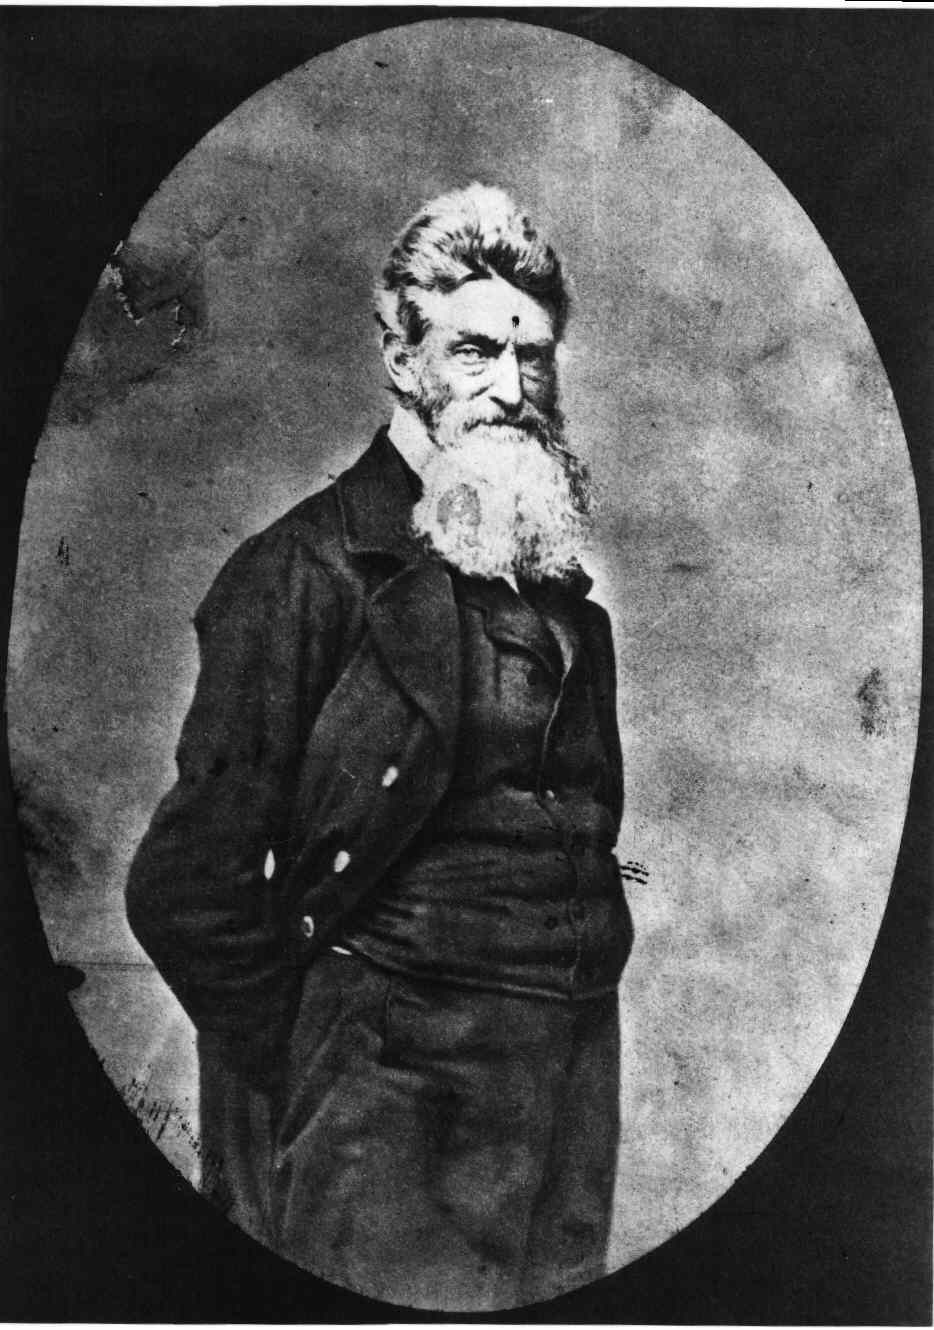 the old man john brown at harpers ferry essay Slandered by craven abolitionists as unhinged, john brown was in  on the  pitiless kansas prairies and later deployed at harpers ferry  several  misapprehensions about the pious old buzzard (brown, i mean, not lincoln.